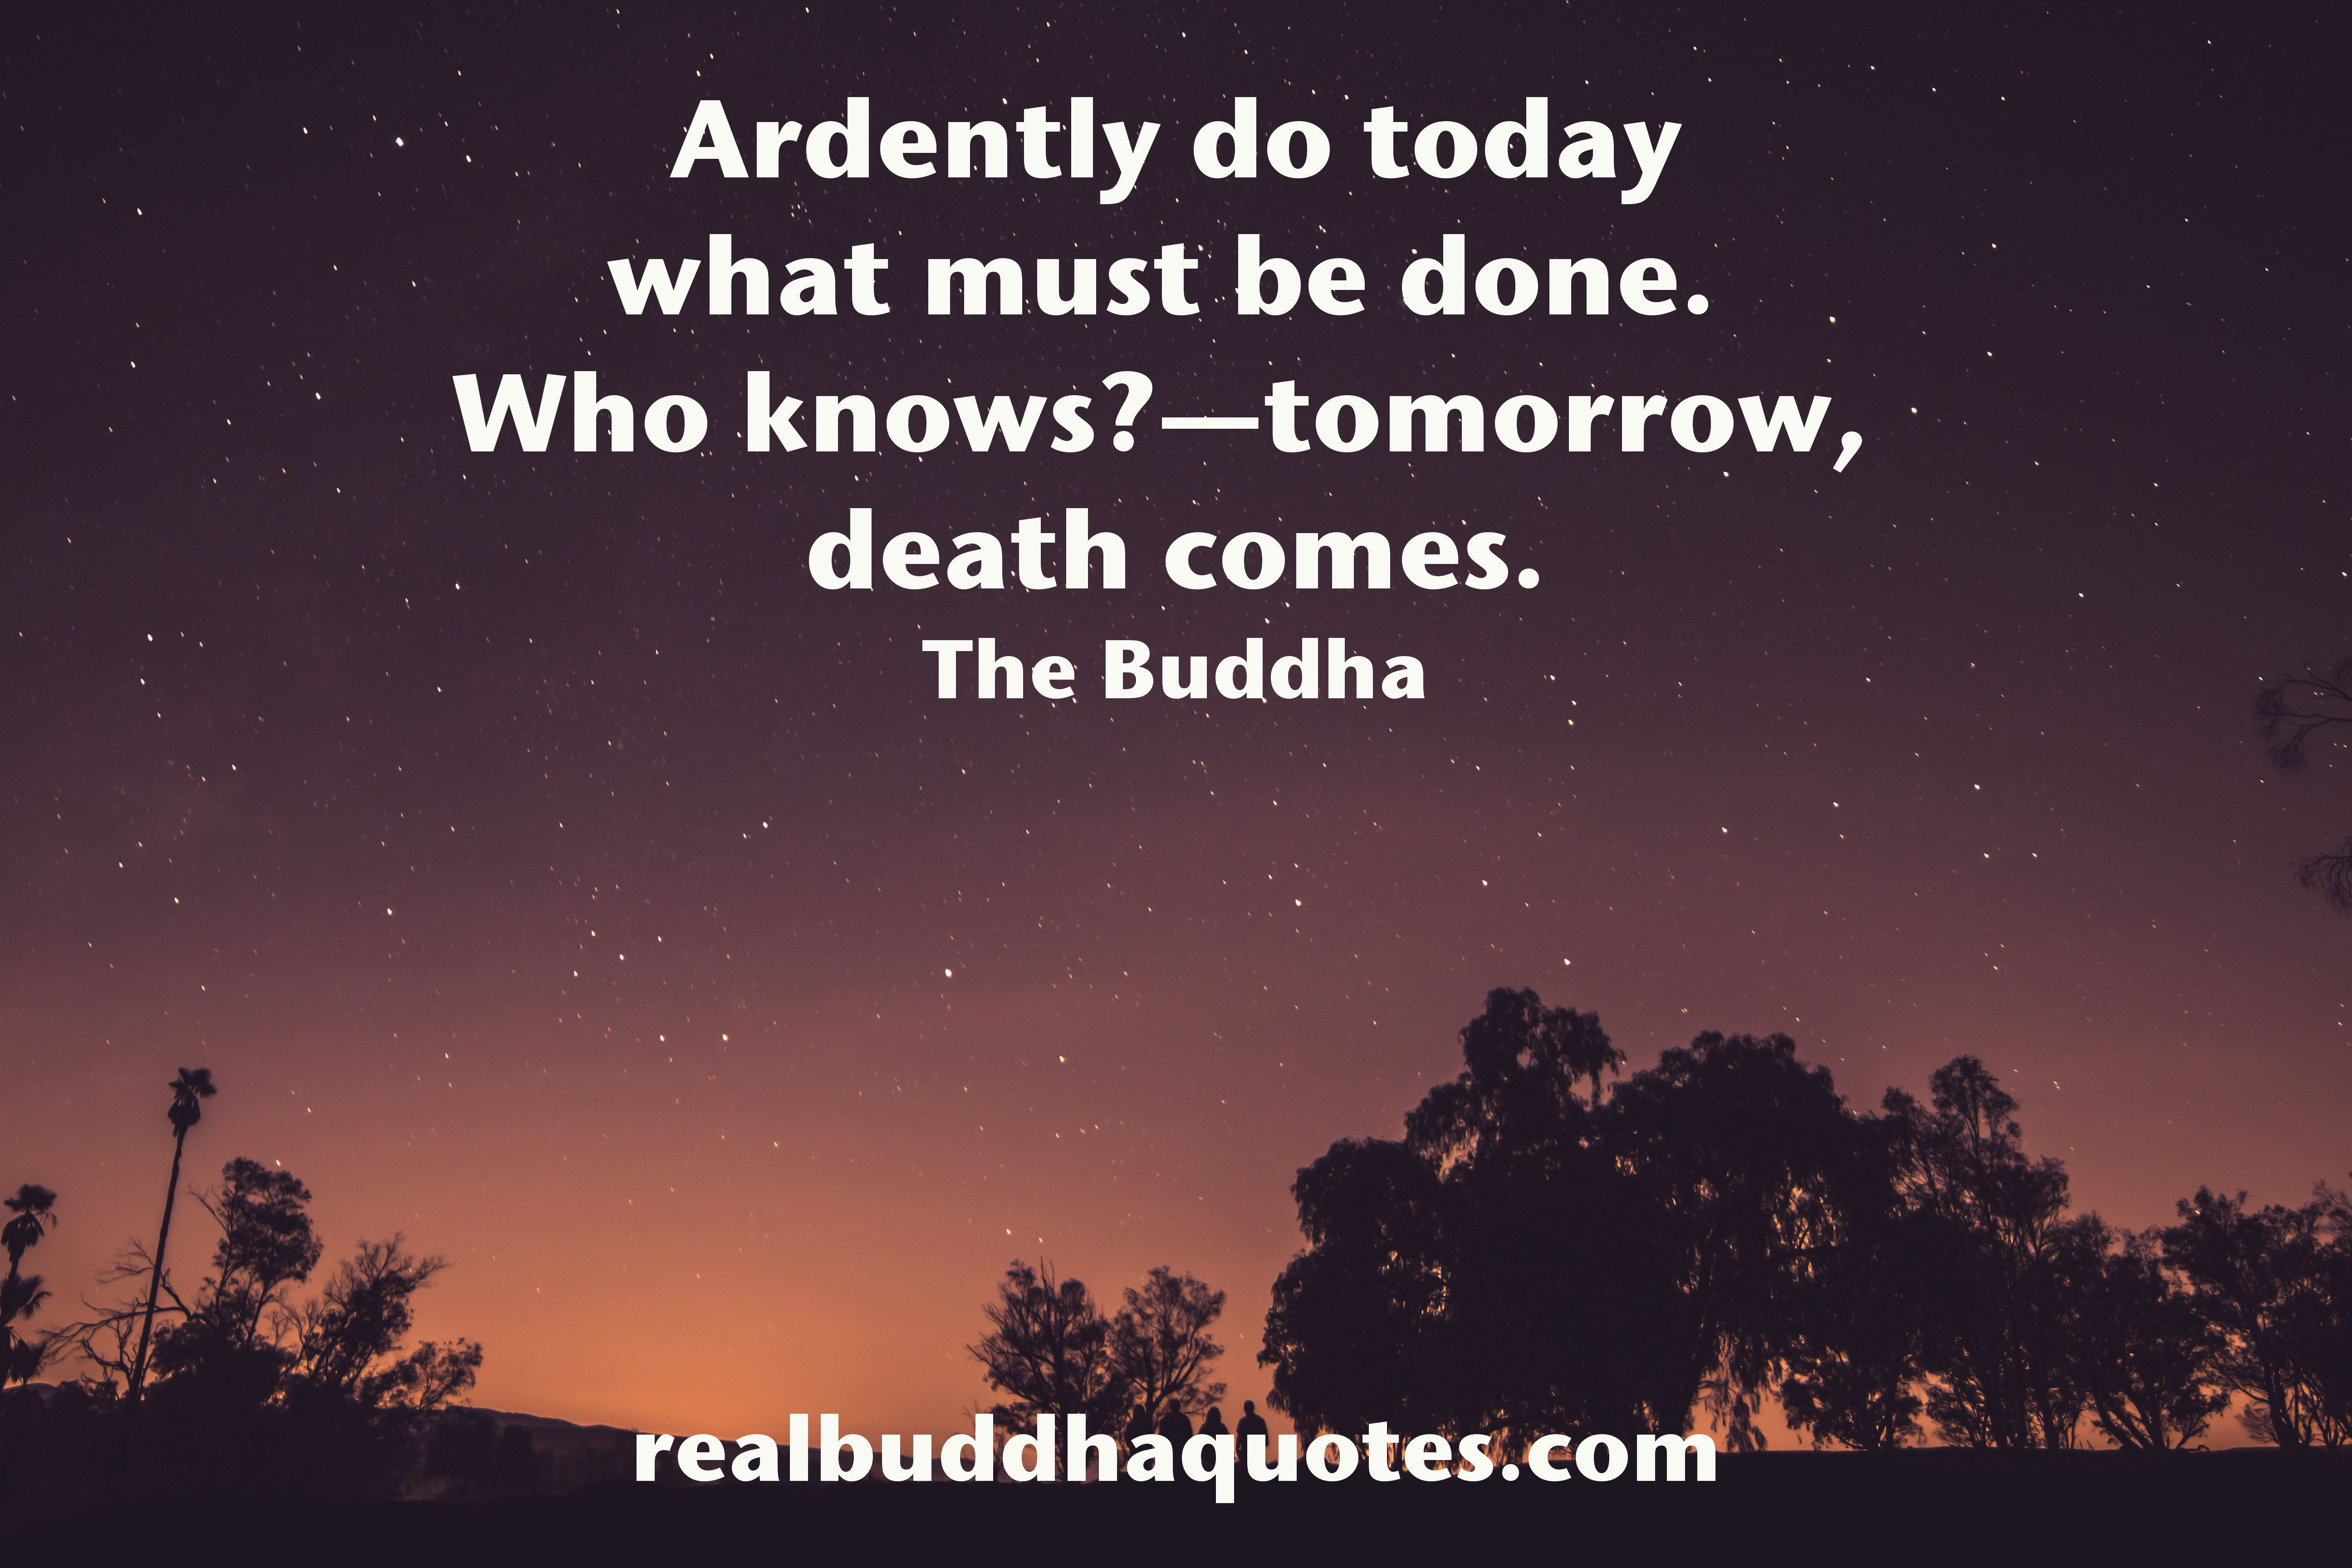 Real Buddha Quotes Real Buddha Quotes  Verified Quotes From The Buddhist Scriptures